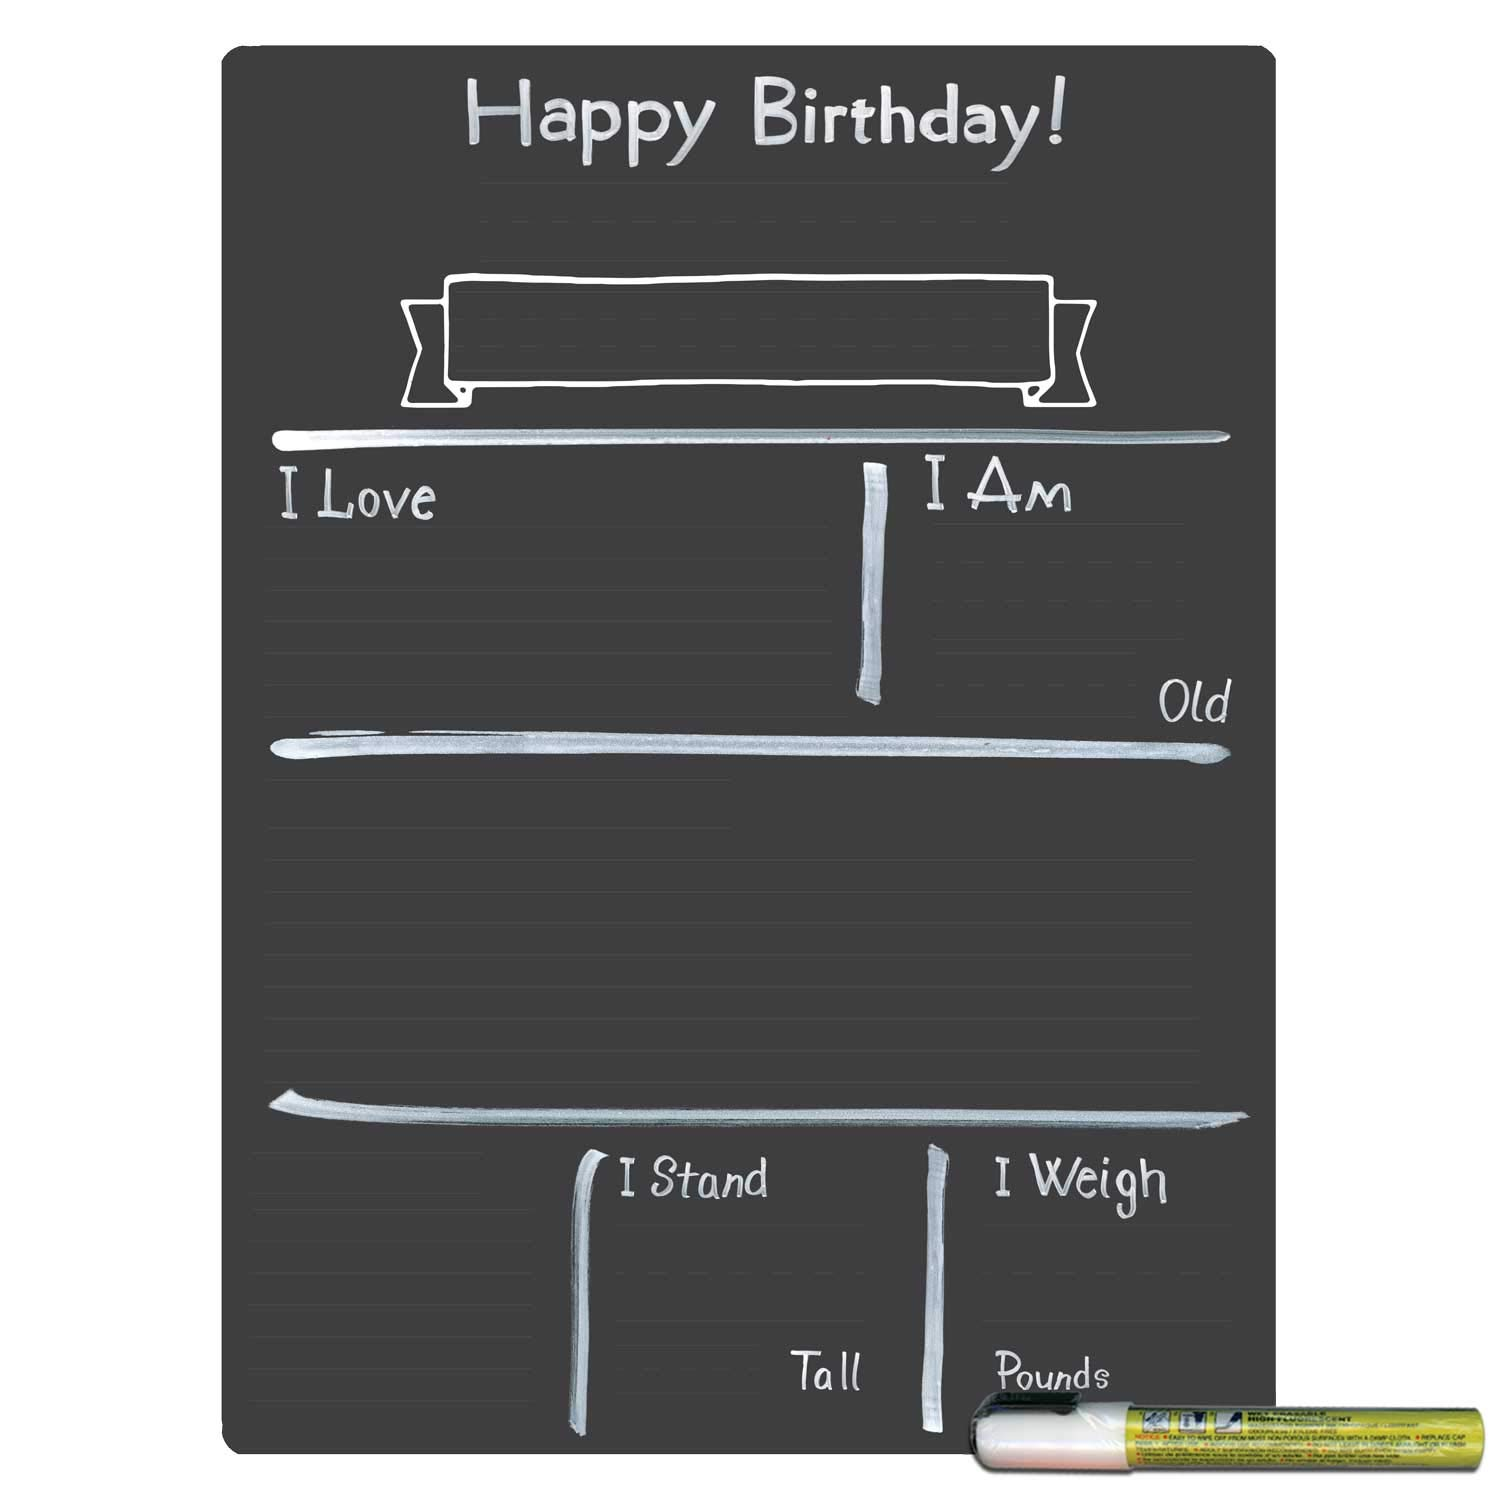 Cohas Design Your Own Birthday Milestone Board with Reusable Chalkboard Style Surface, 12 by 16 Inches, White Marker